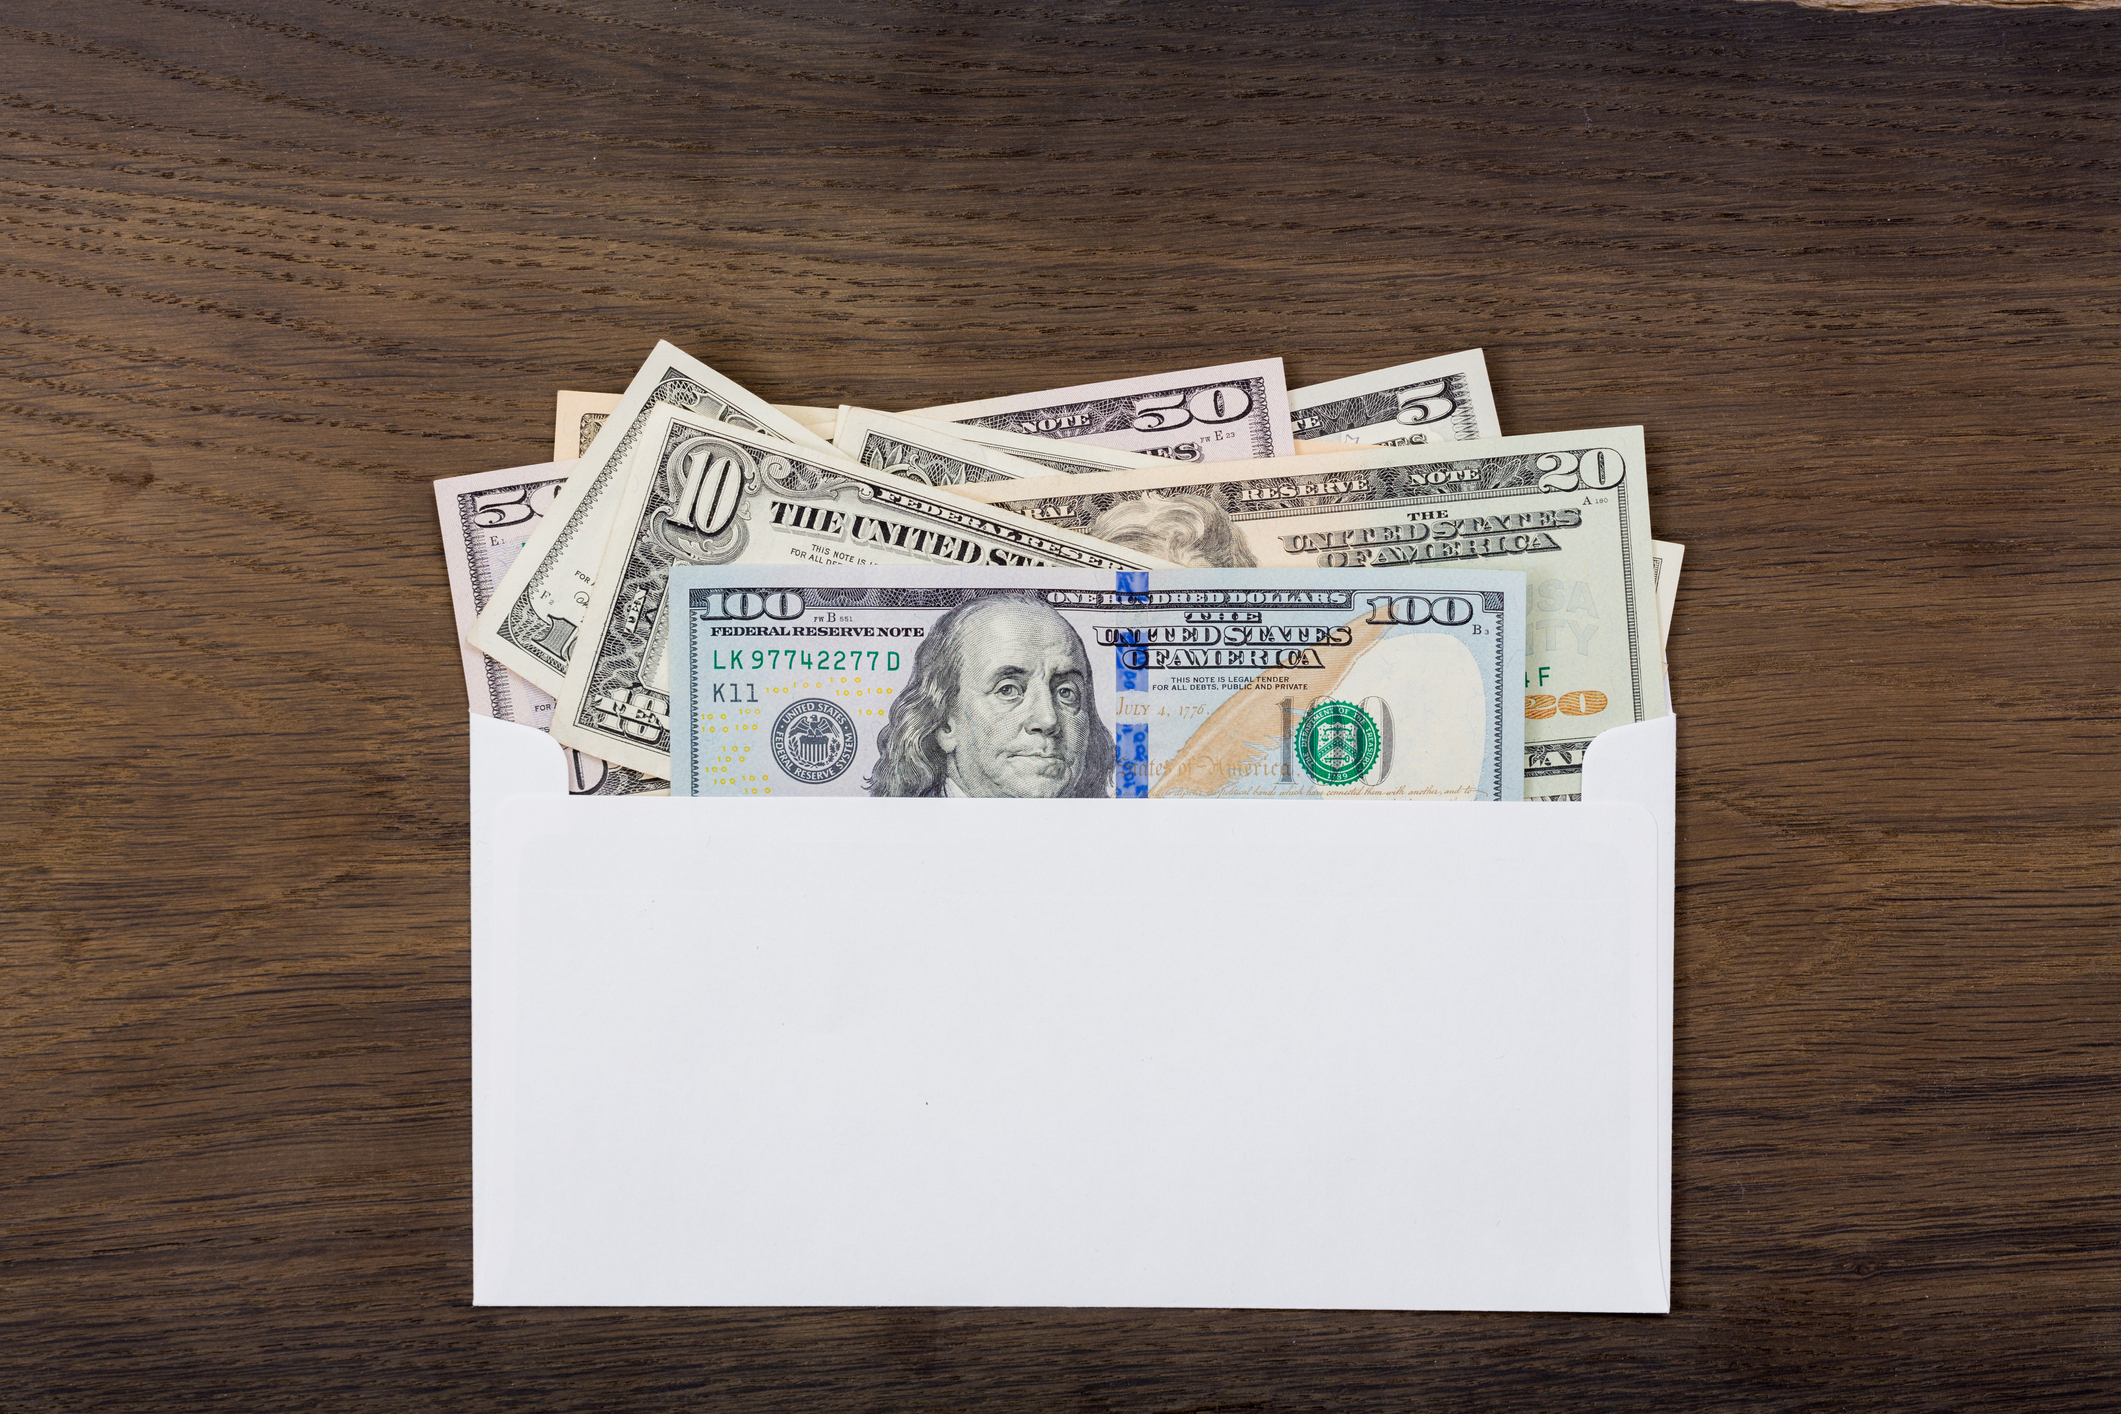 An envelope with various bills sticking out